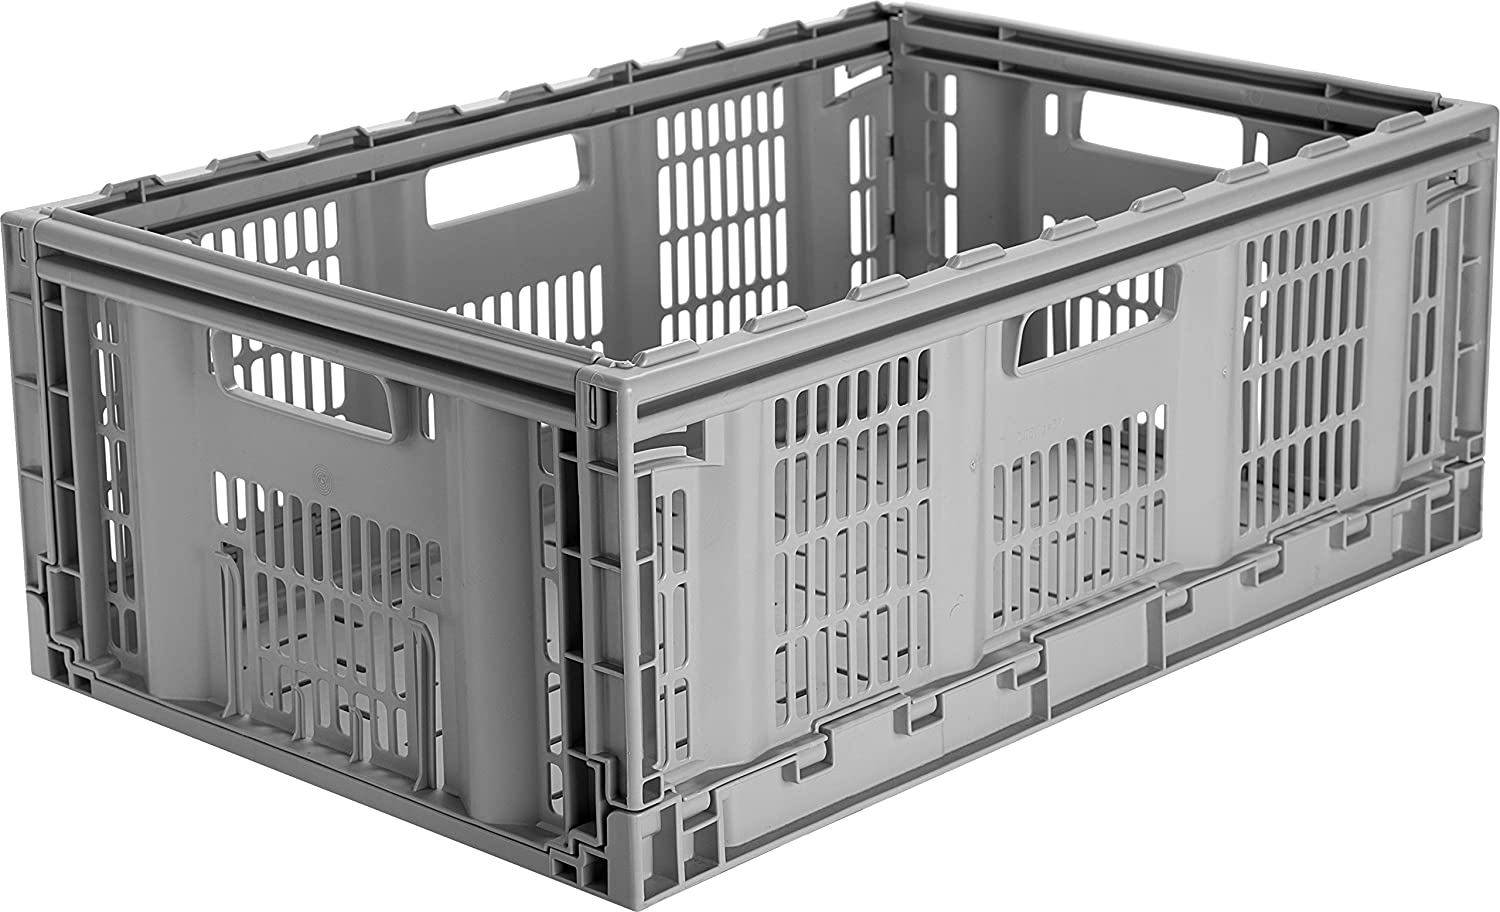 CleverMade CleverCrates Pro-Grade 15.8 Liter Collapsible Storage Bin/Container: Grated Wall Utility Basket/Tote, Grey 8035397-155